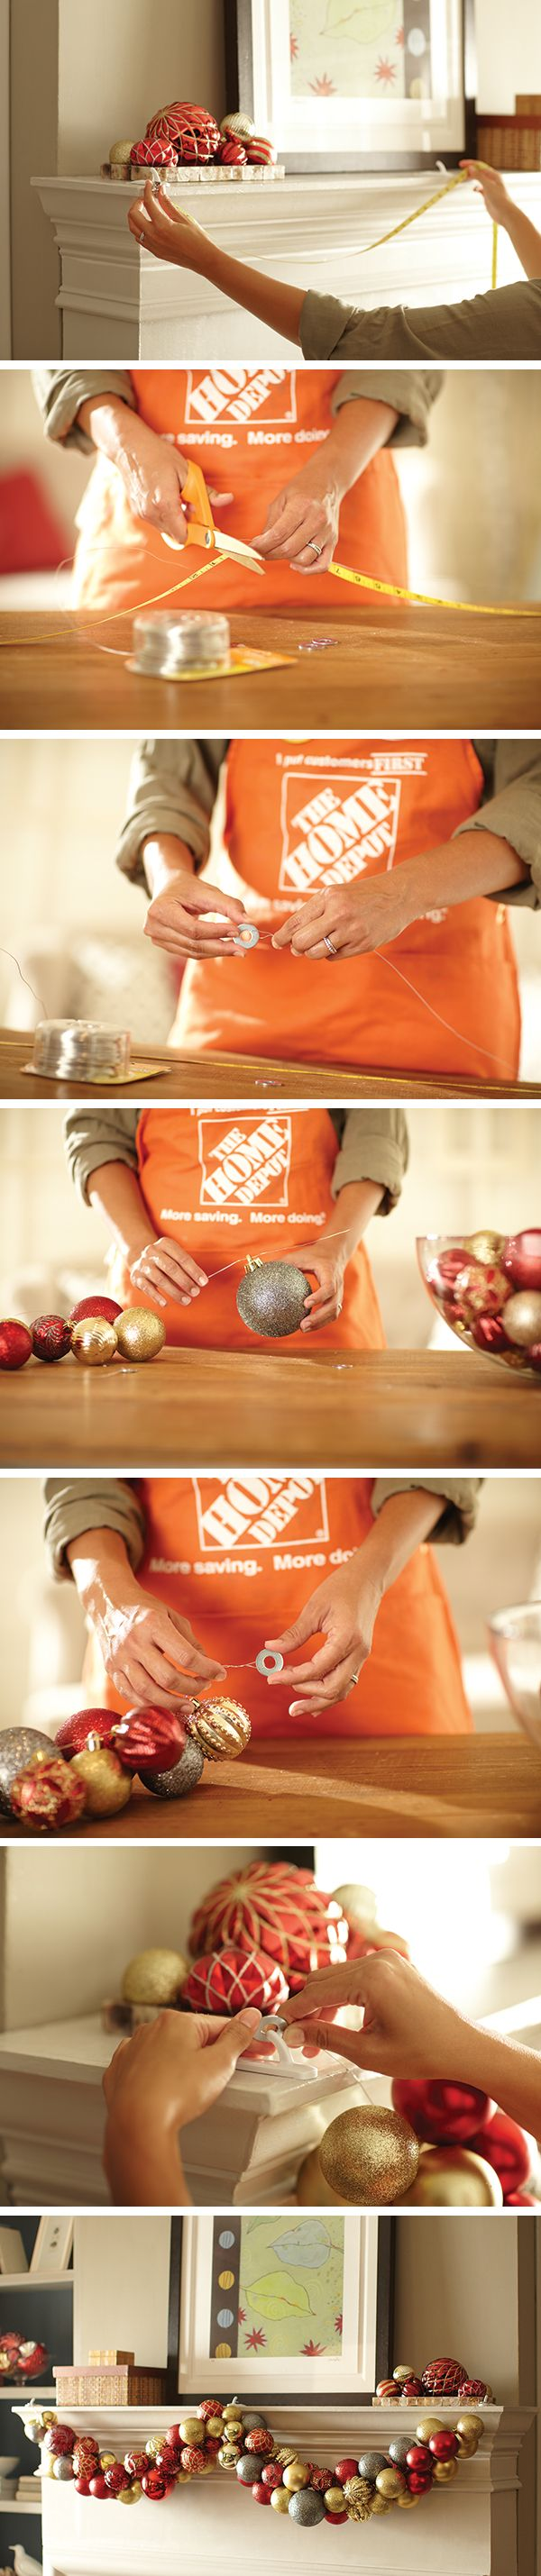 How To Make an Ornament Garland